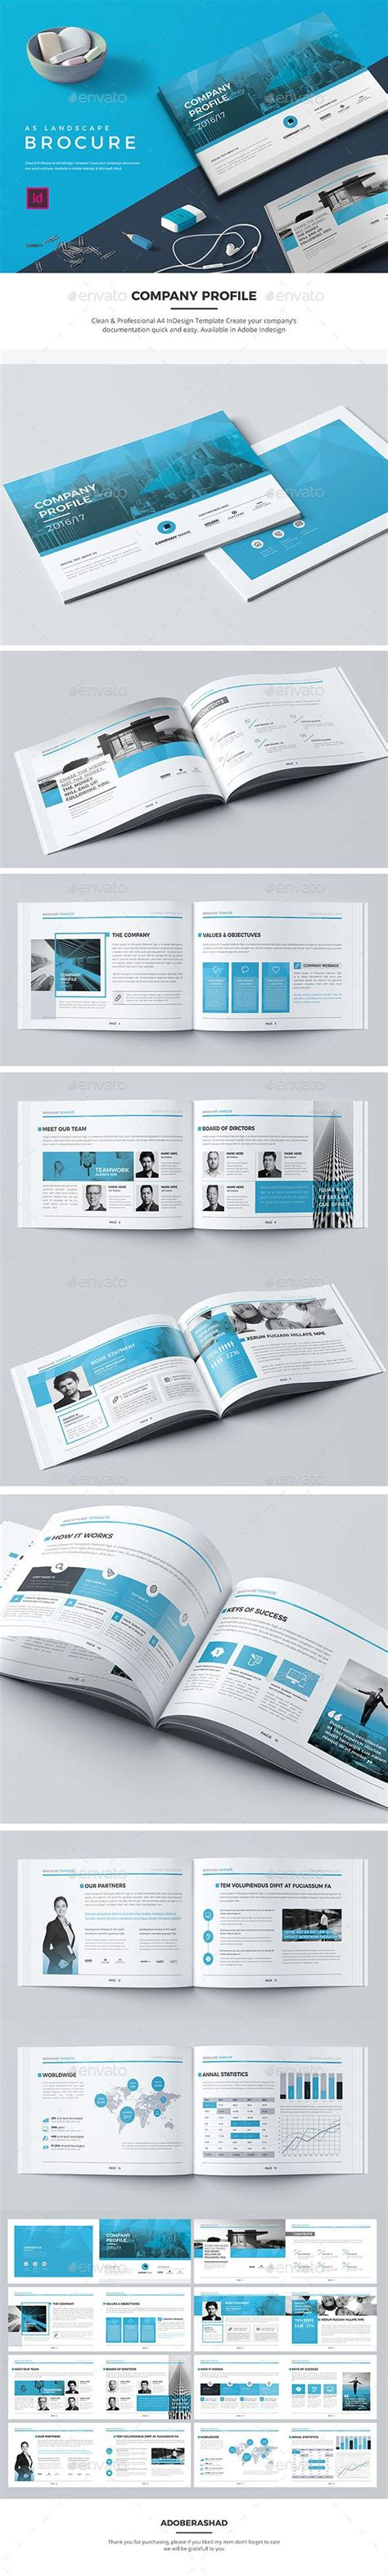 A5 Landscape Company Profile Indesign Indd Corporate Download Https Graphicriver Net Item Indesign Landscape Template